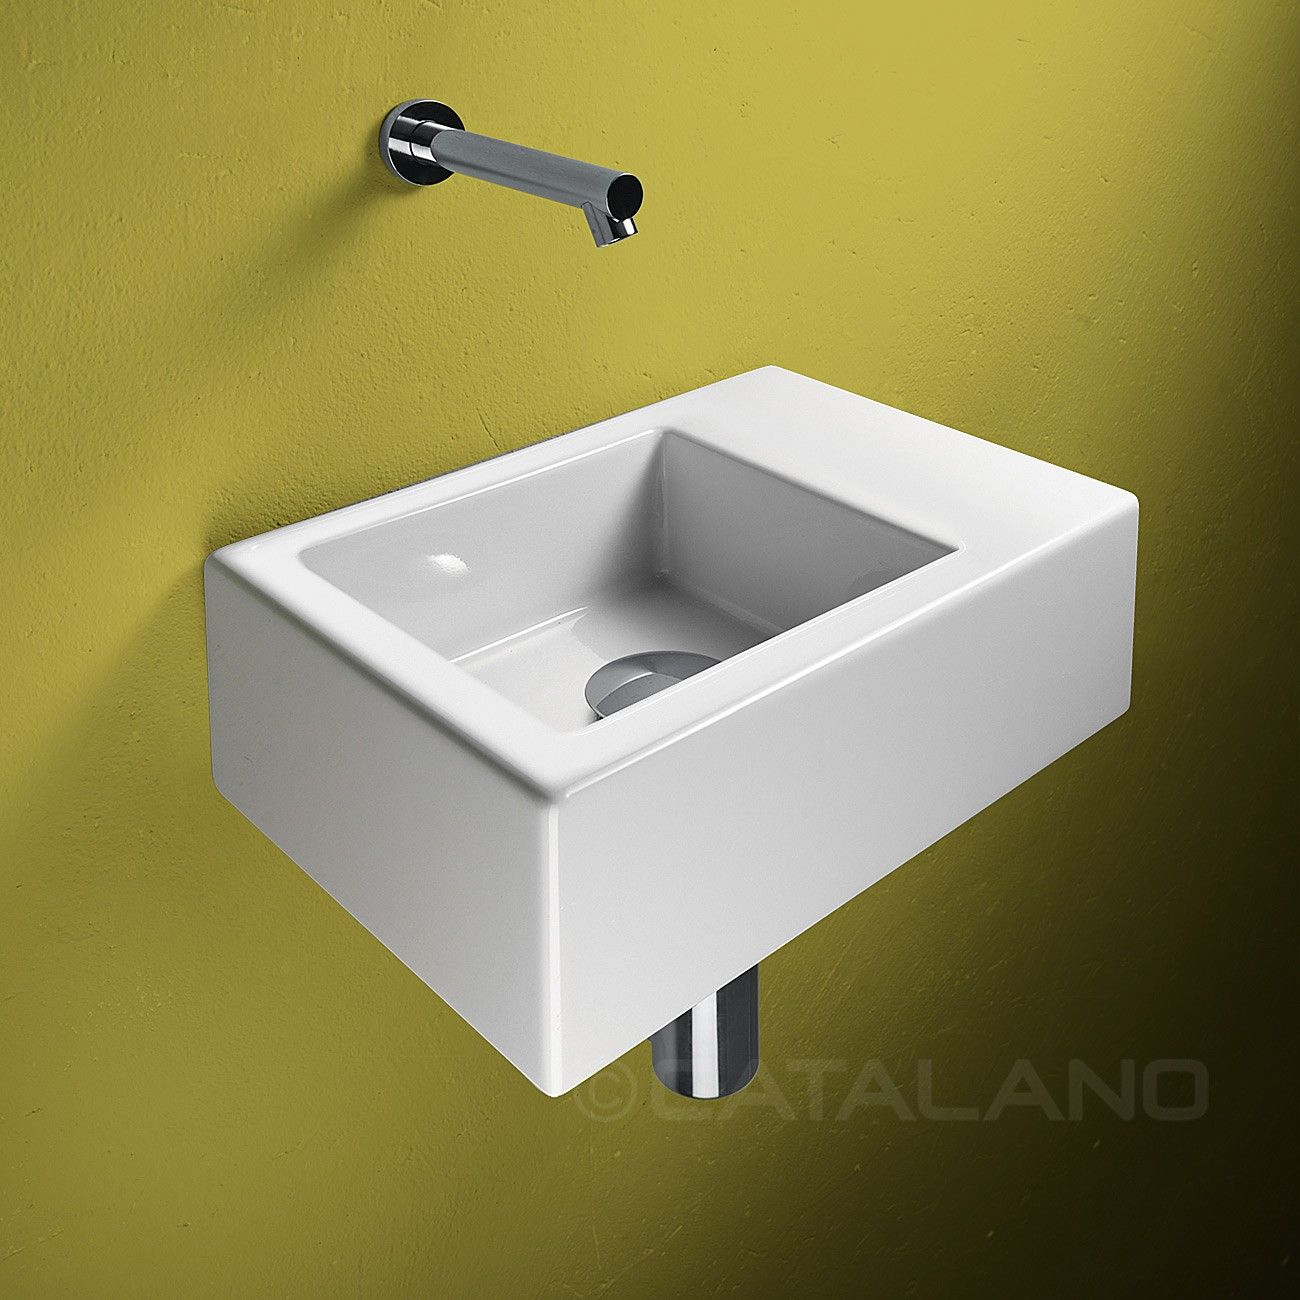 Catalano verso 350 x 250mm small cloakroom washbasin white bathroom discount w55 azienka - Slim cloakroom basin ...